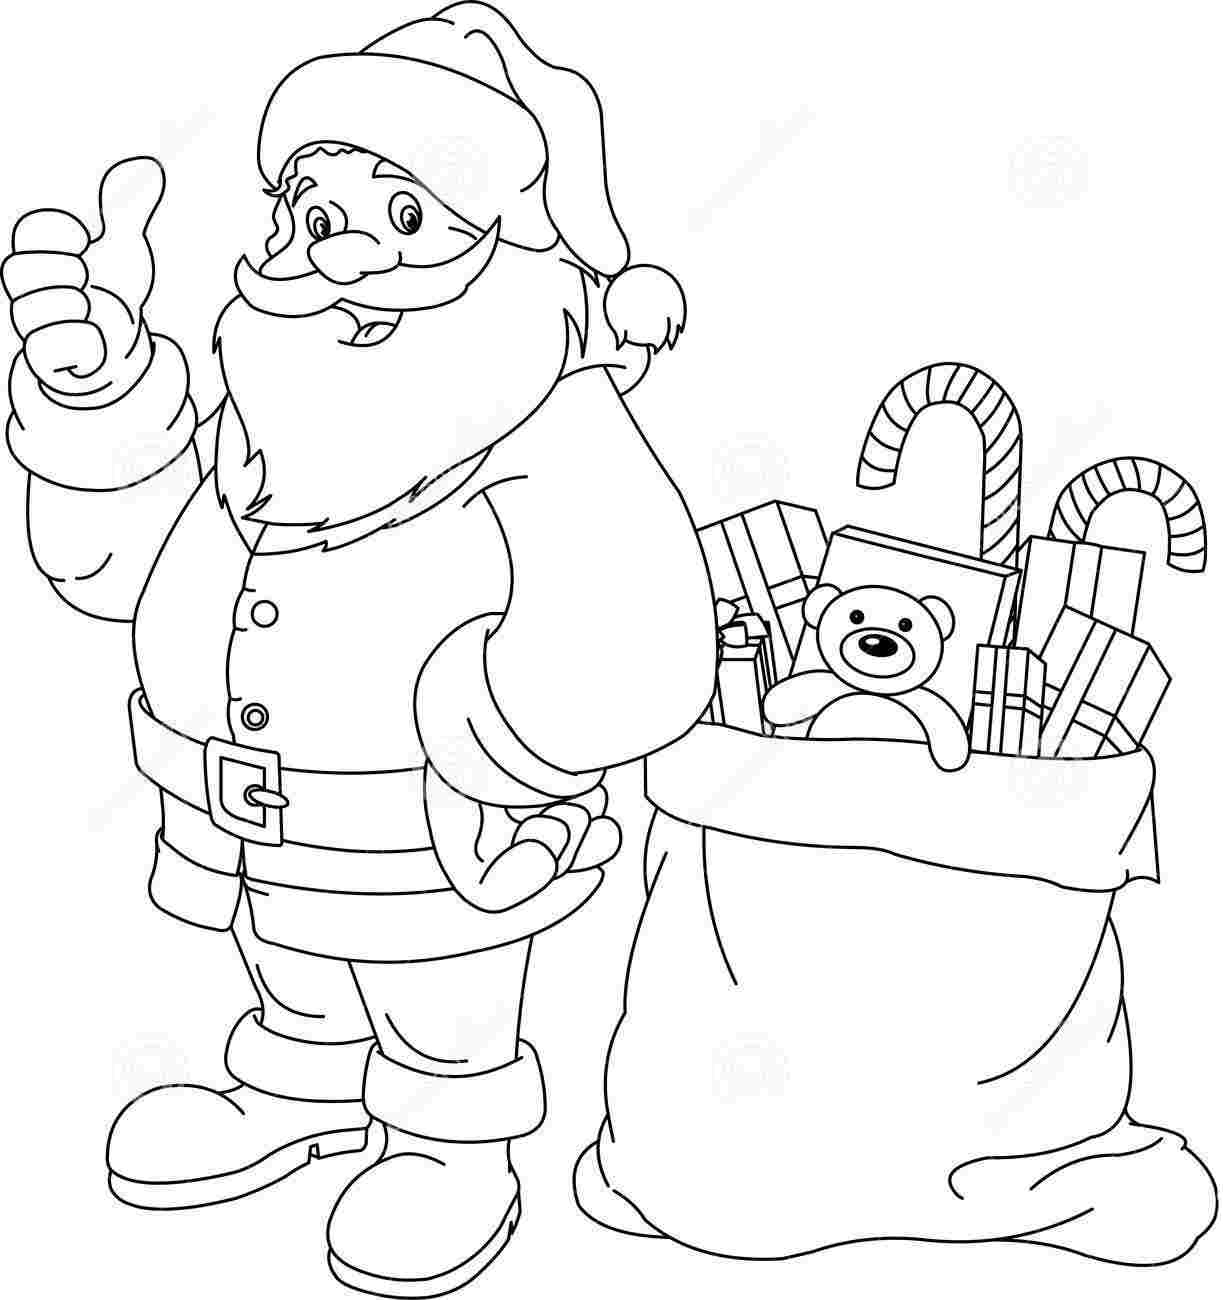 Santa claus coloring pages free printable online santa for Santa claus coloring pages online